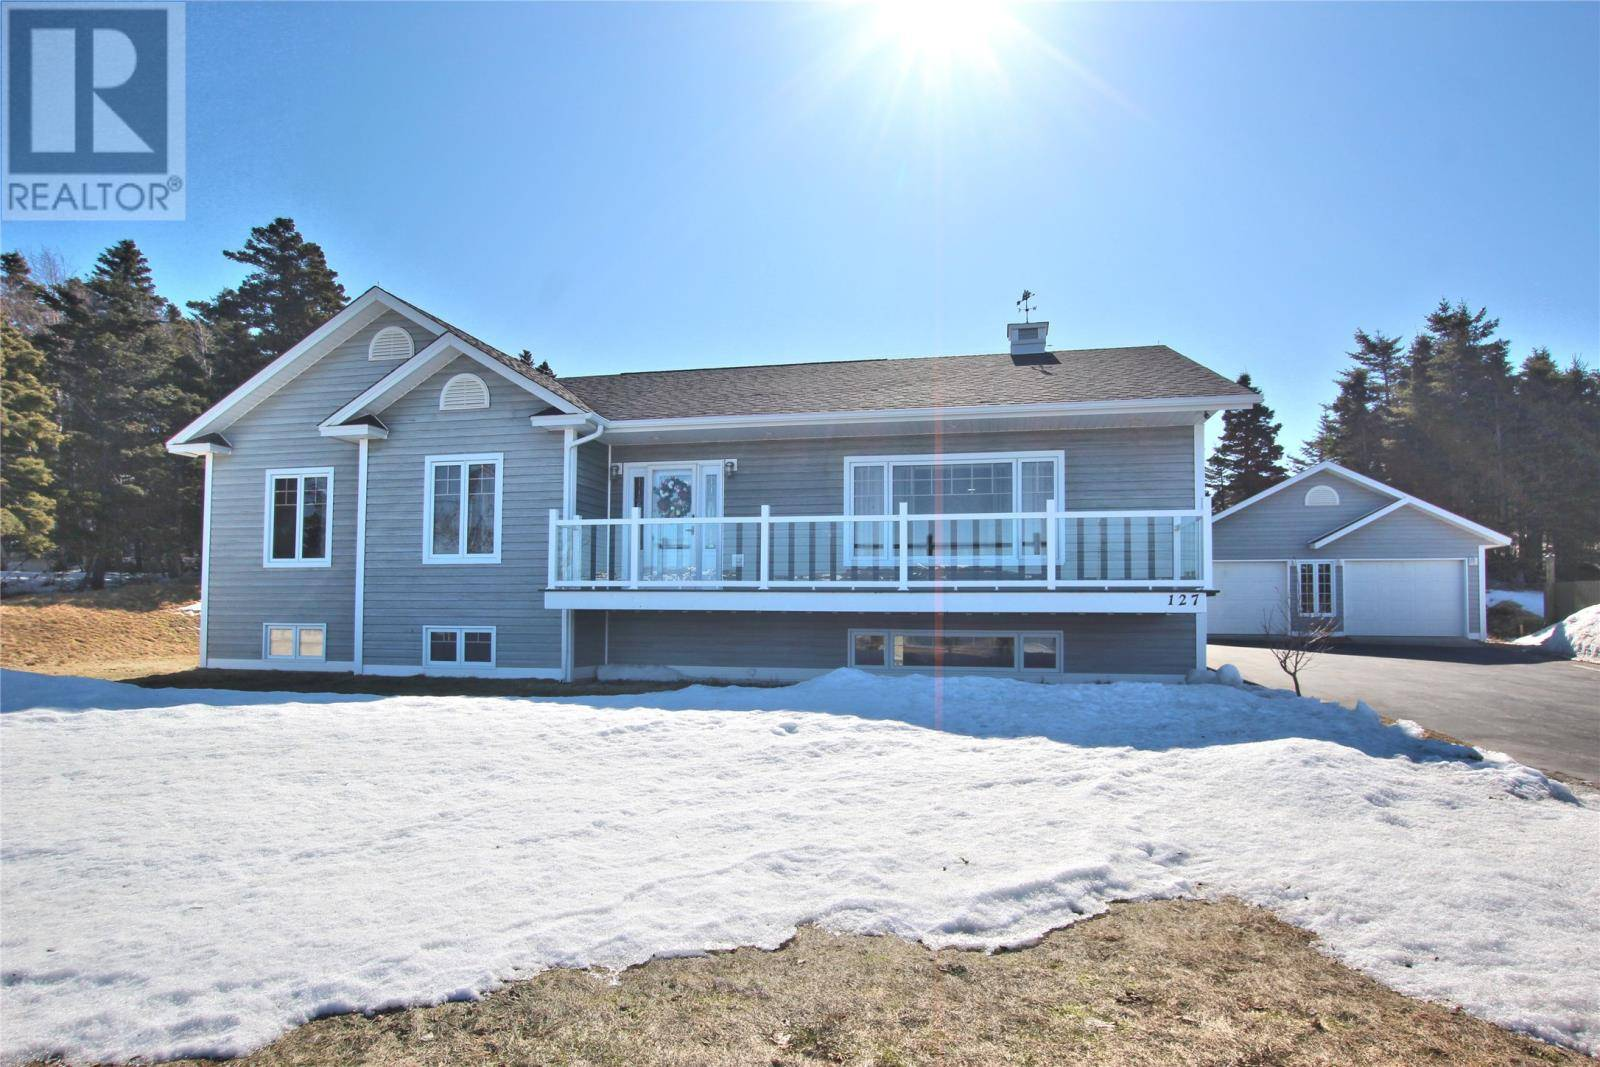 House for sale at 127 Crossroads Rd Bay Roberts Newfoundland - MLS: 1212488